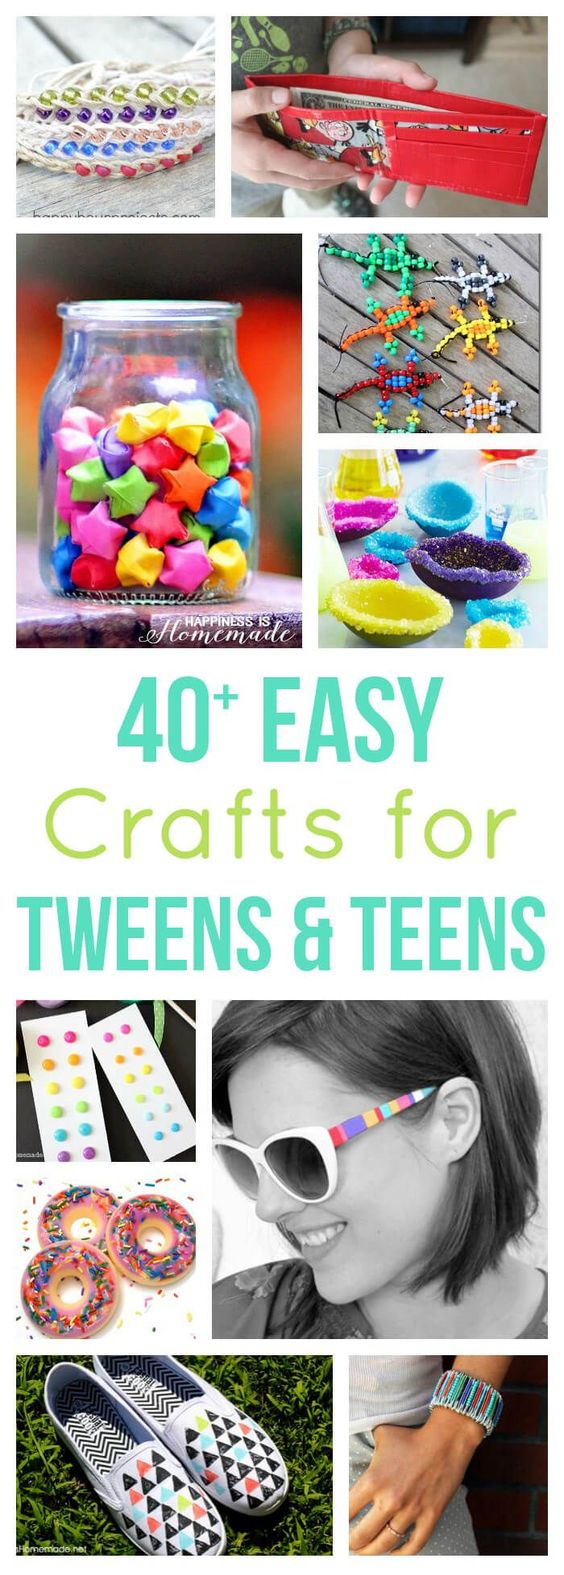 40 Easy Crafts for Teens and Tweens